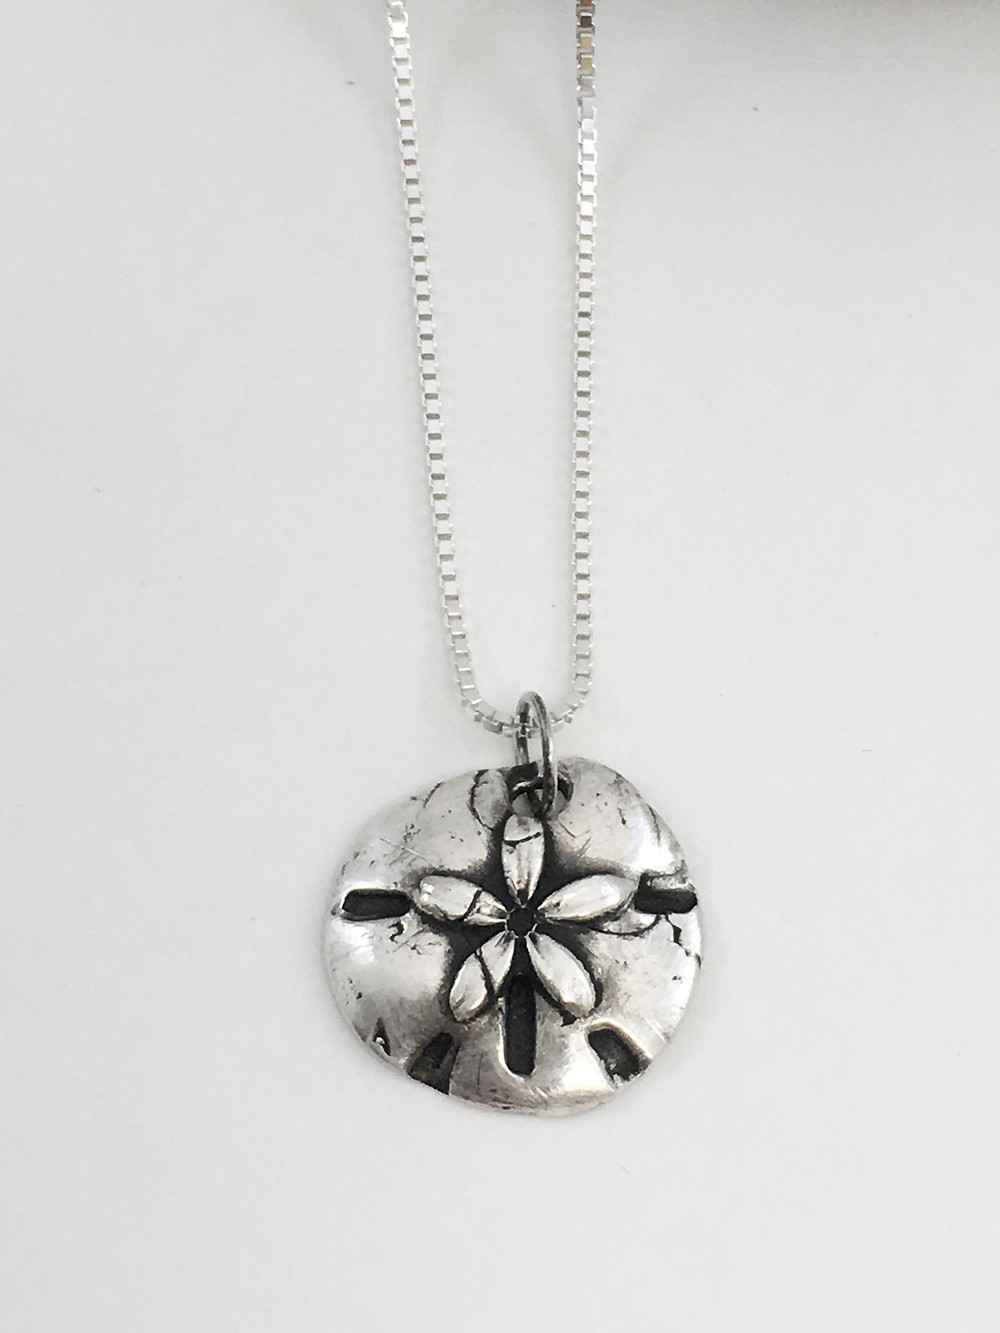 silver sand dollar pendant, PMC pendant, PMC jewelry, silver shell necklace, beach wedding jewelry